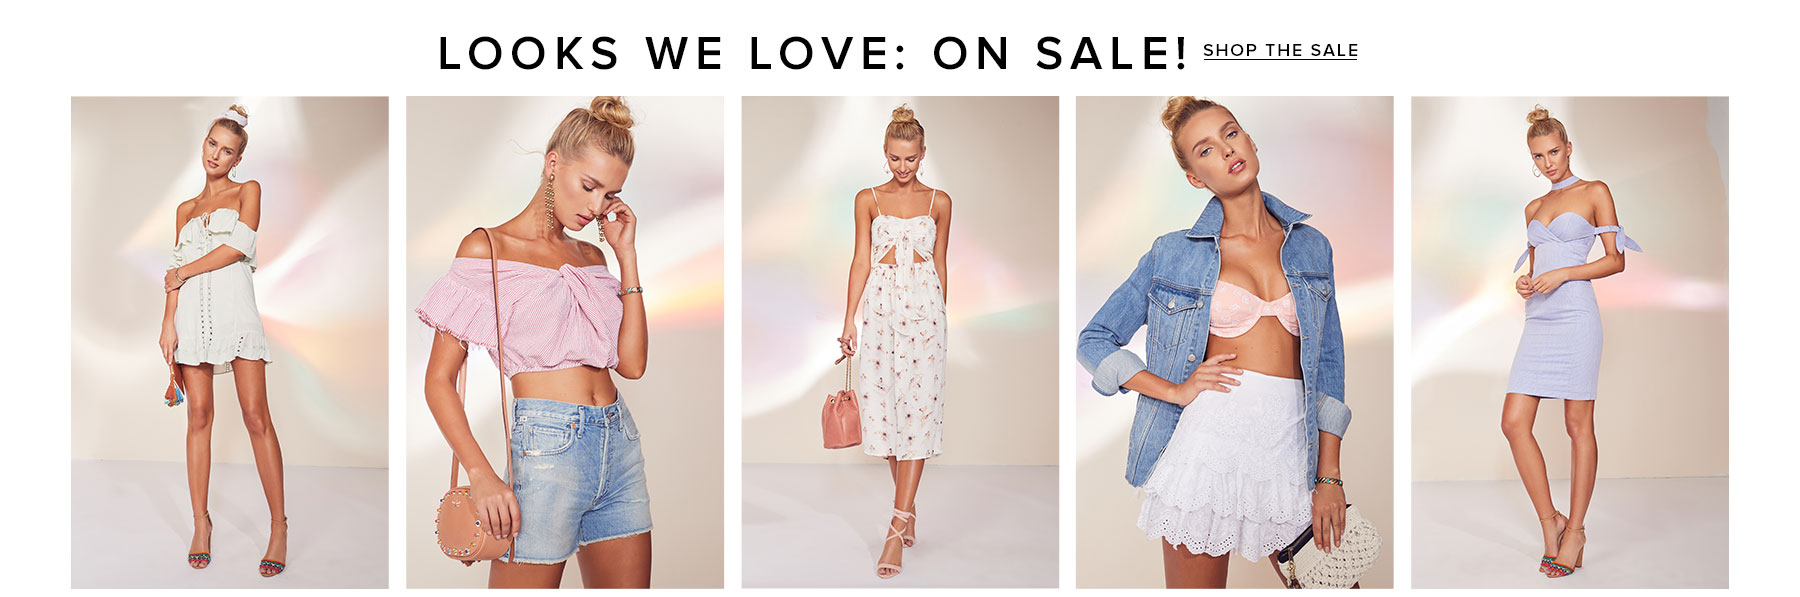 Looks We Love: On Sale. Up to 50% off the sexiest summer styles. Shop the Sale